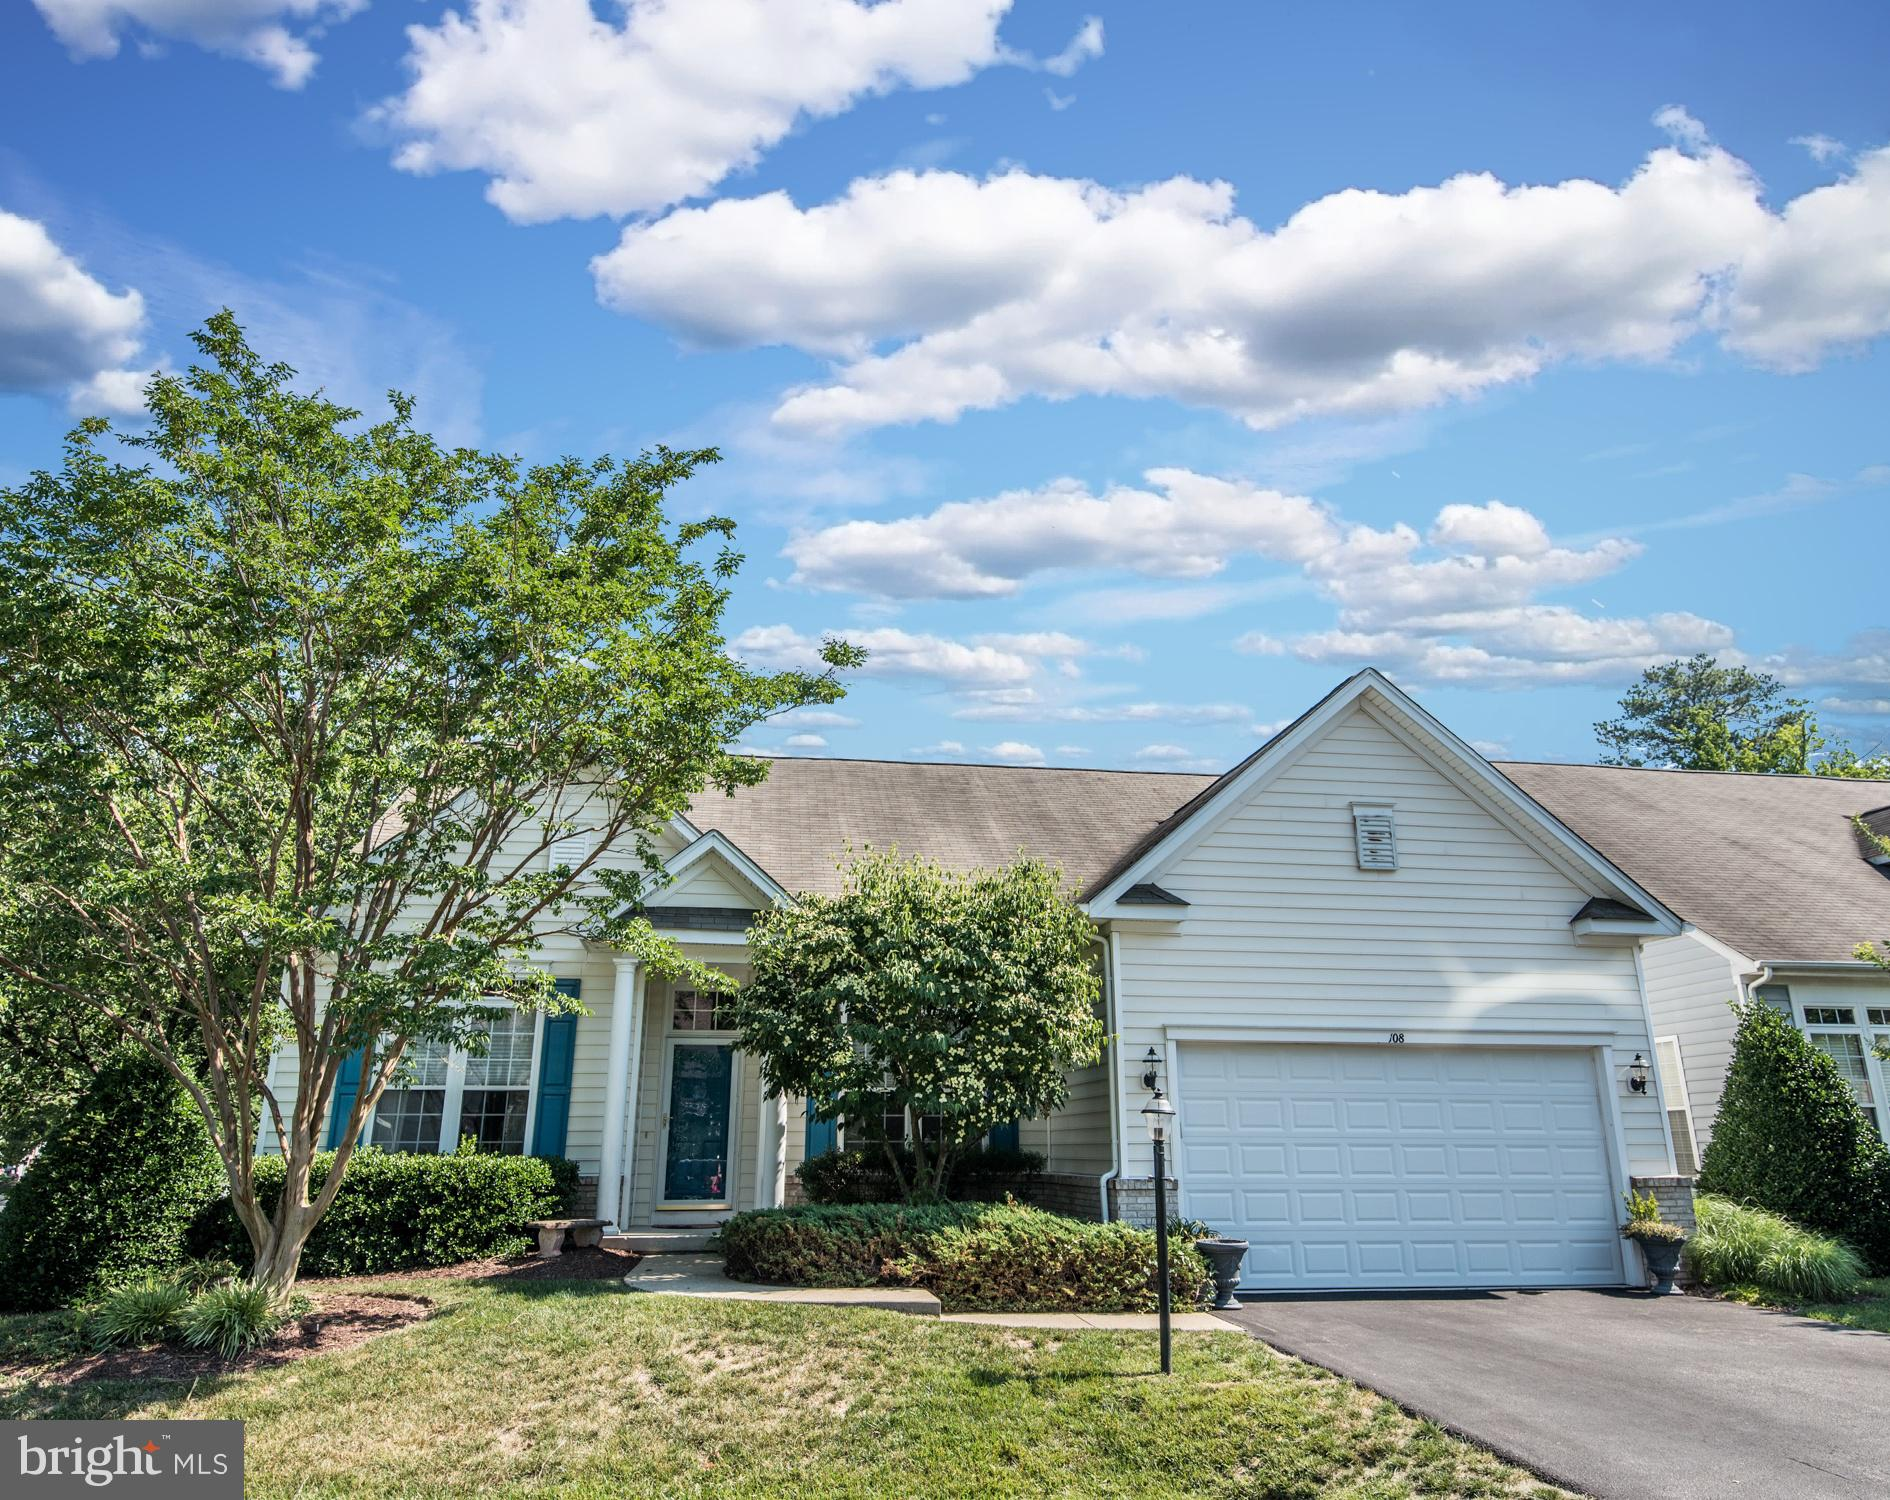 108 CENTRAL PARKE E, OCEAN PINES, MD 21811